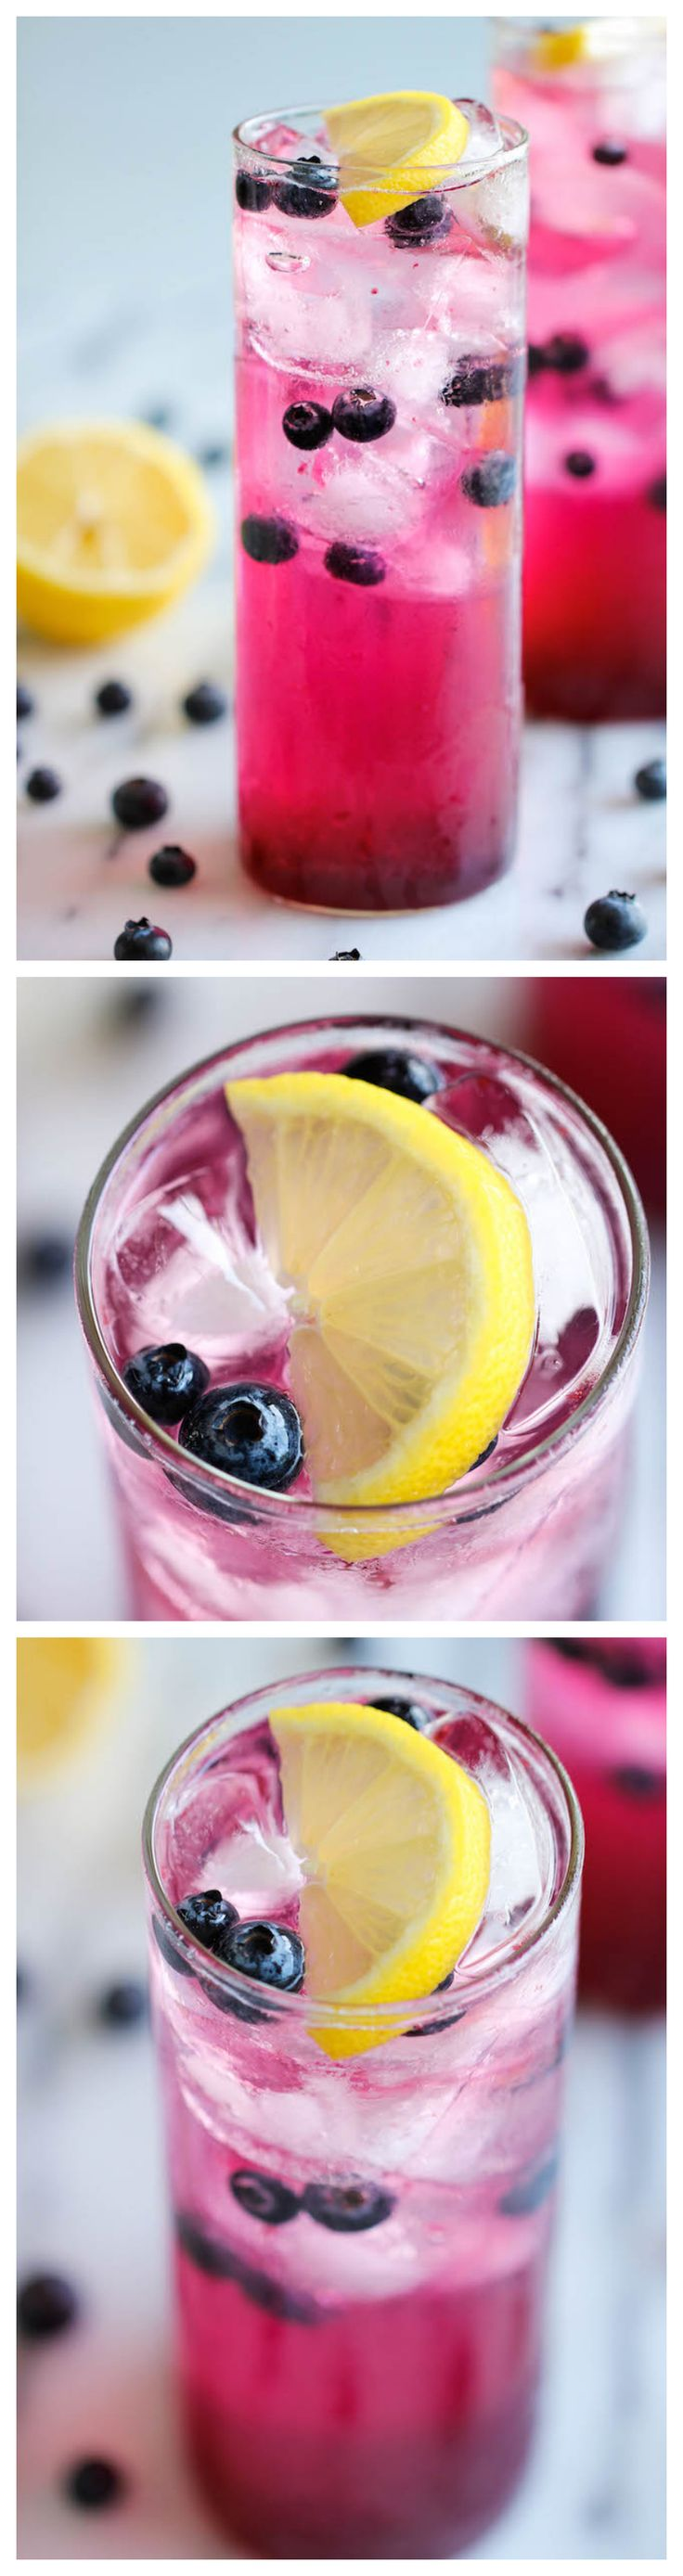 Blueberry Lemonade - Made with a super easy blueberry syrup, this lemonade is so refreshing, sweet and tangy. It's the perfect way to cool down on a hot day!: